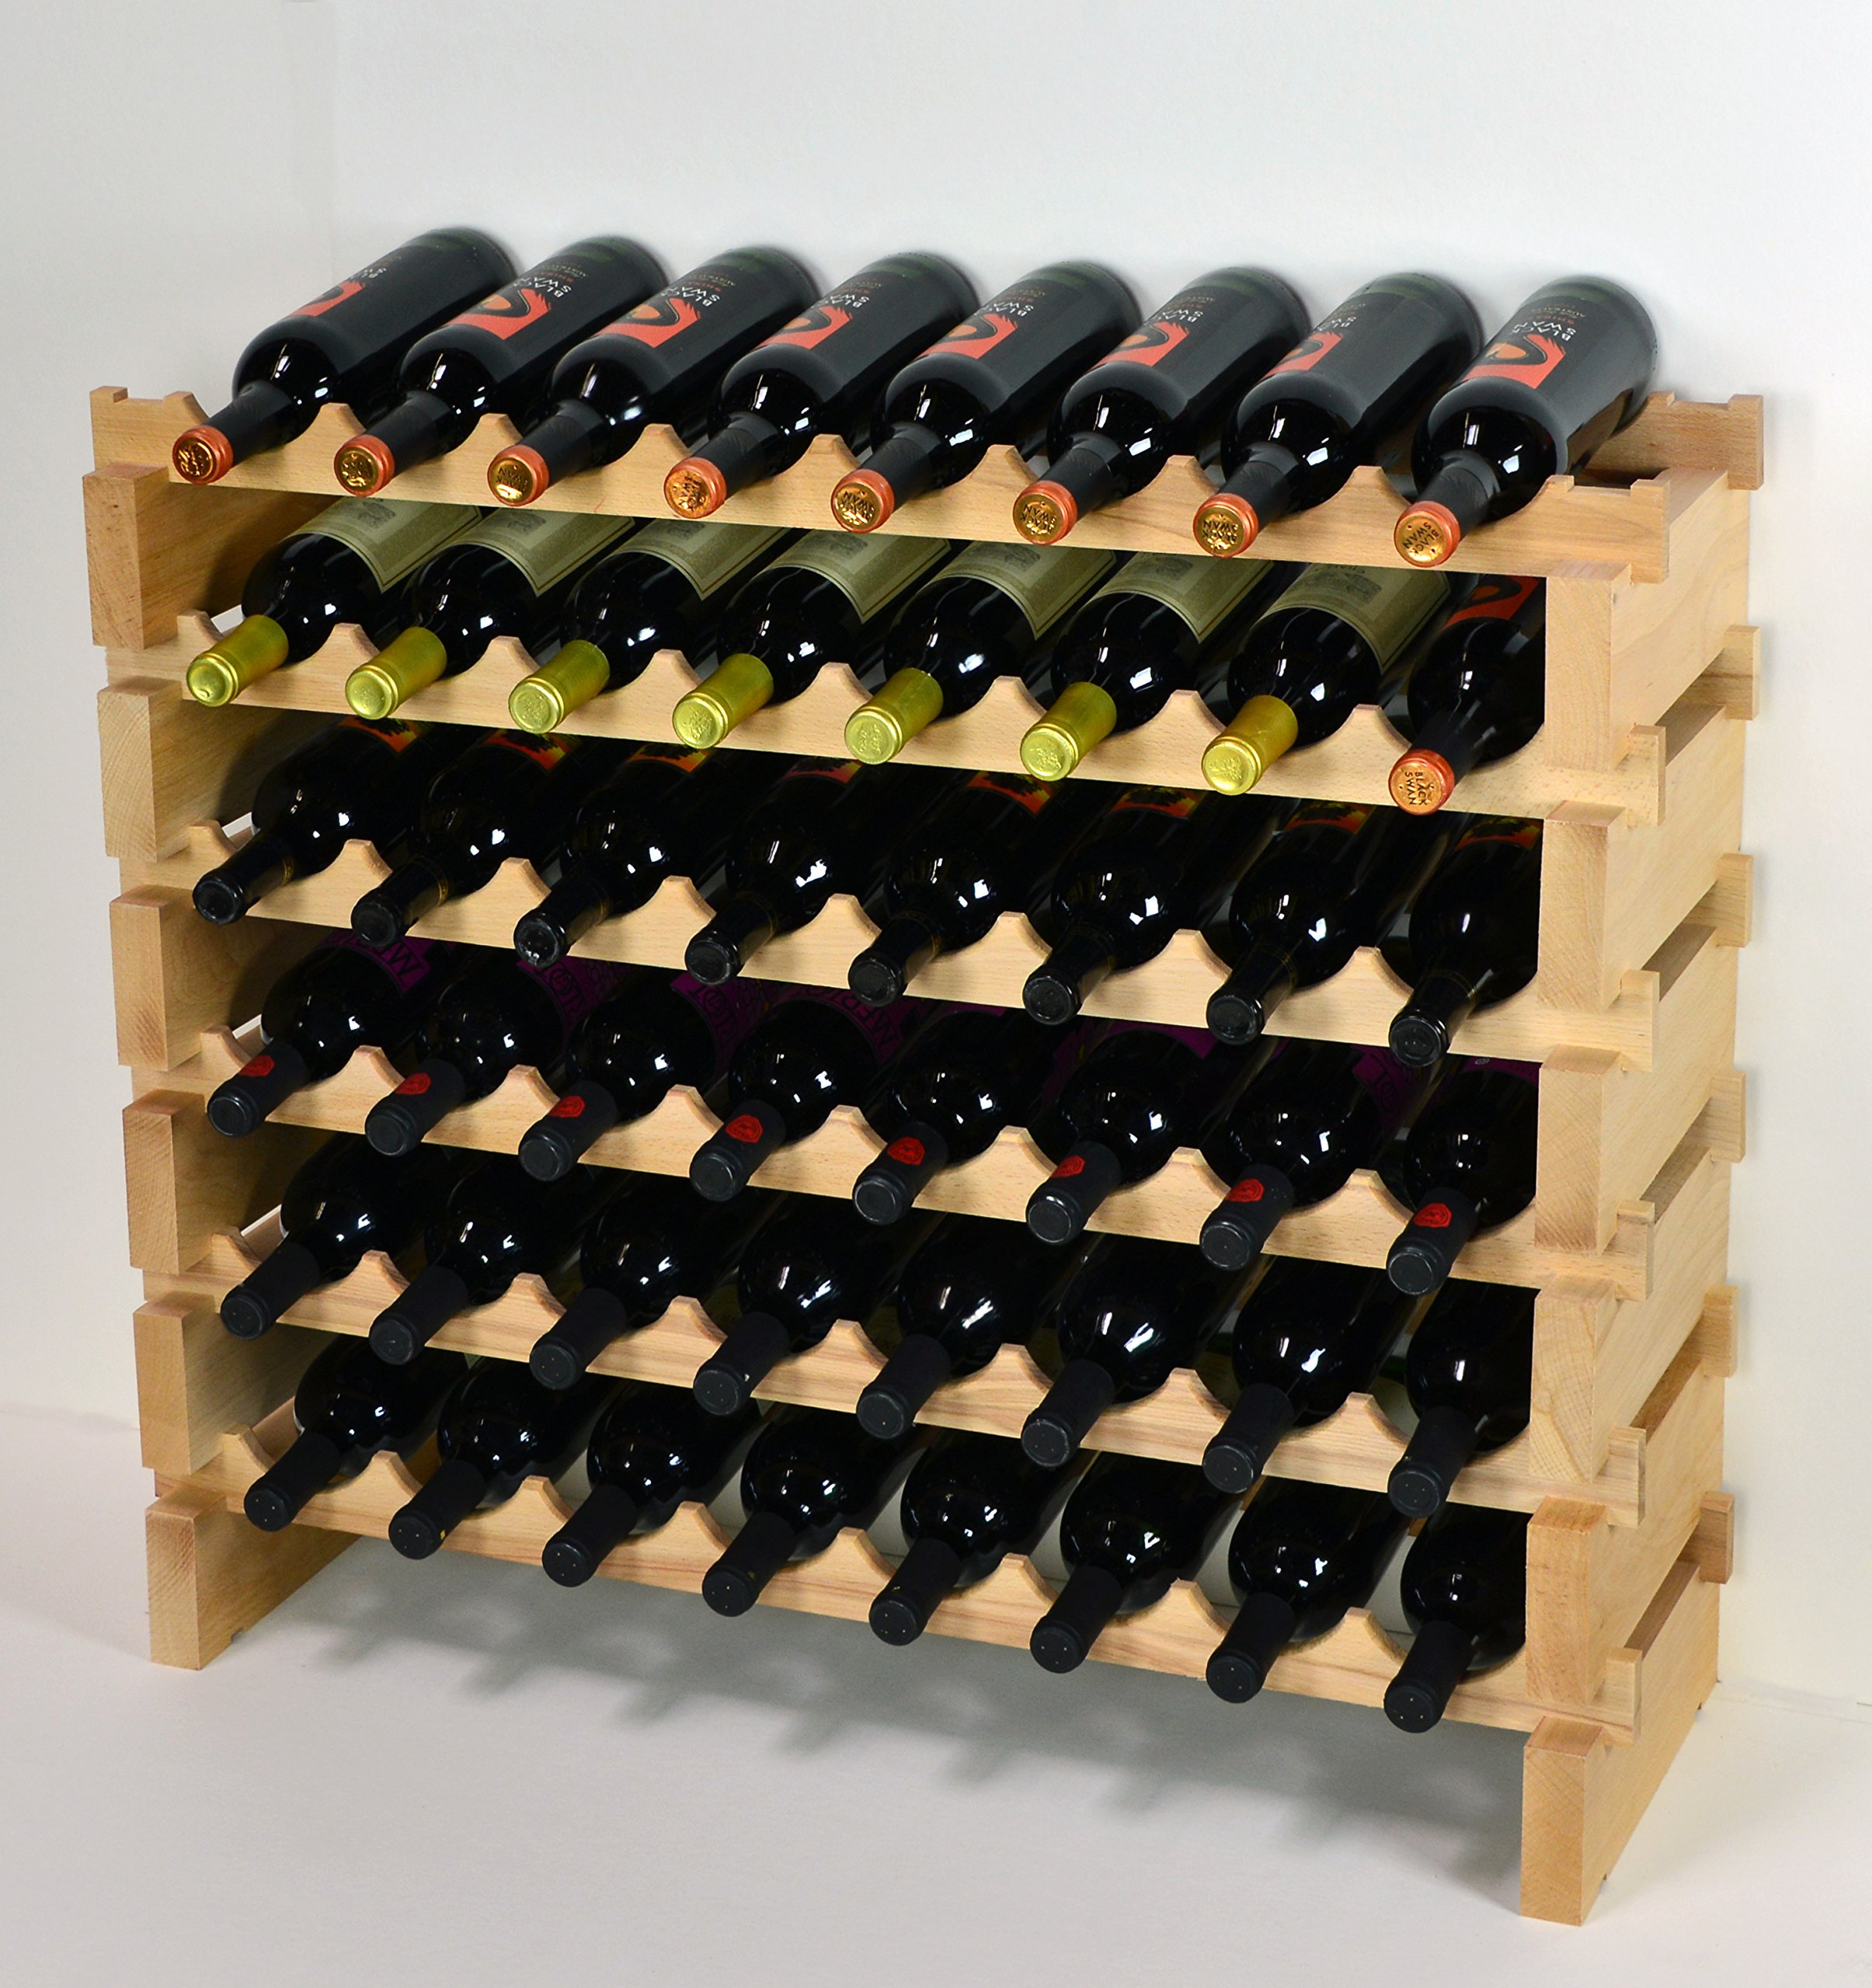 Wine Rack Wood -48 Bottles Modular Hardwood Wine Racks (8 bottles x 6 shelves)